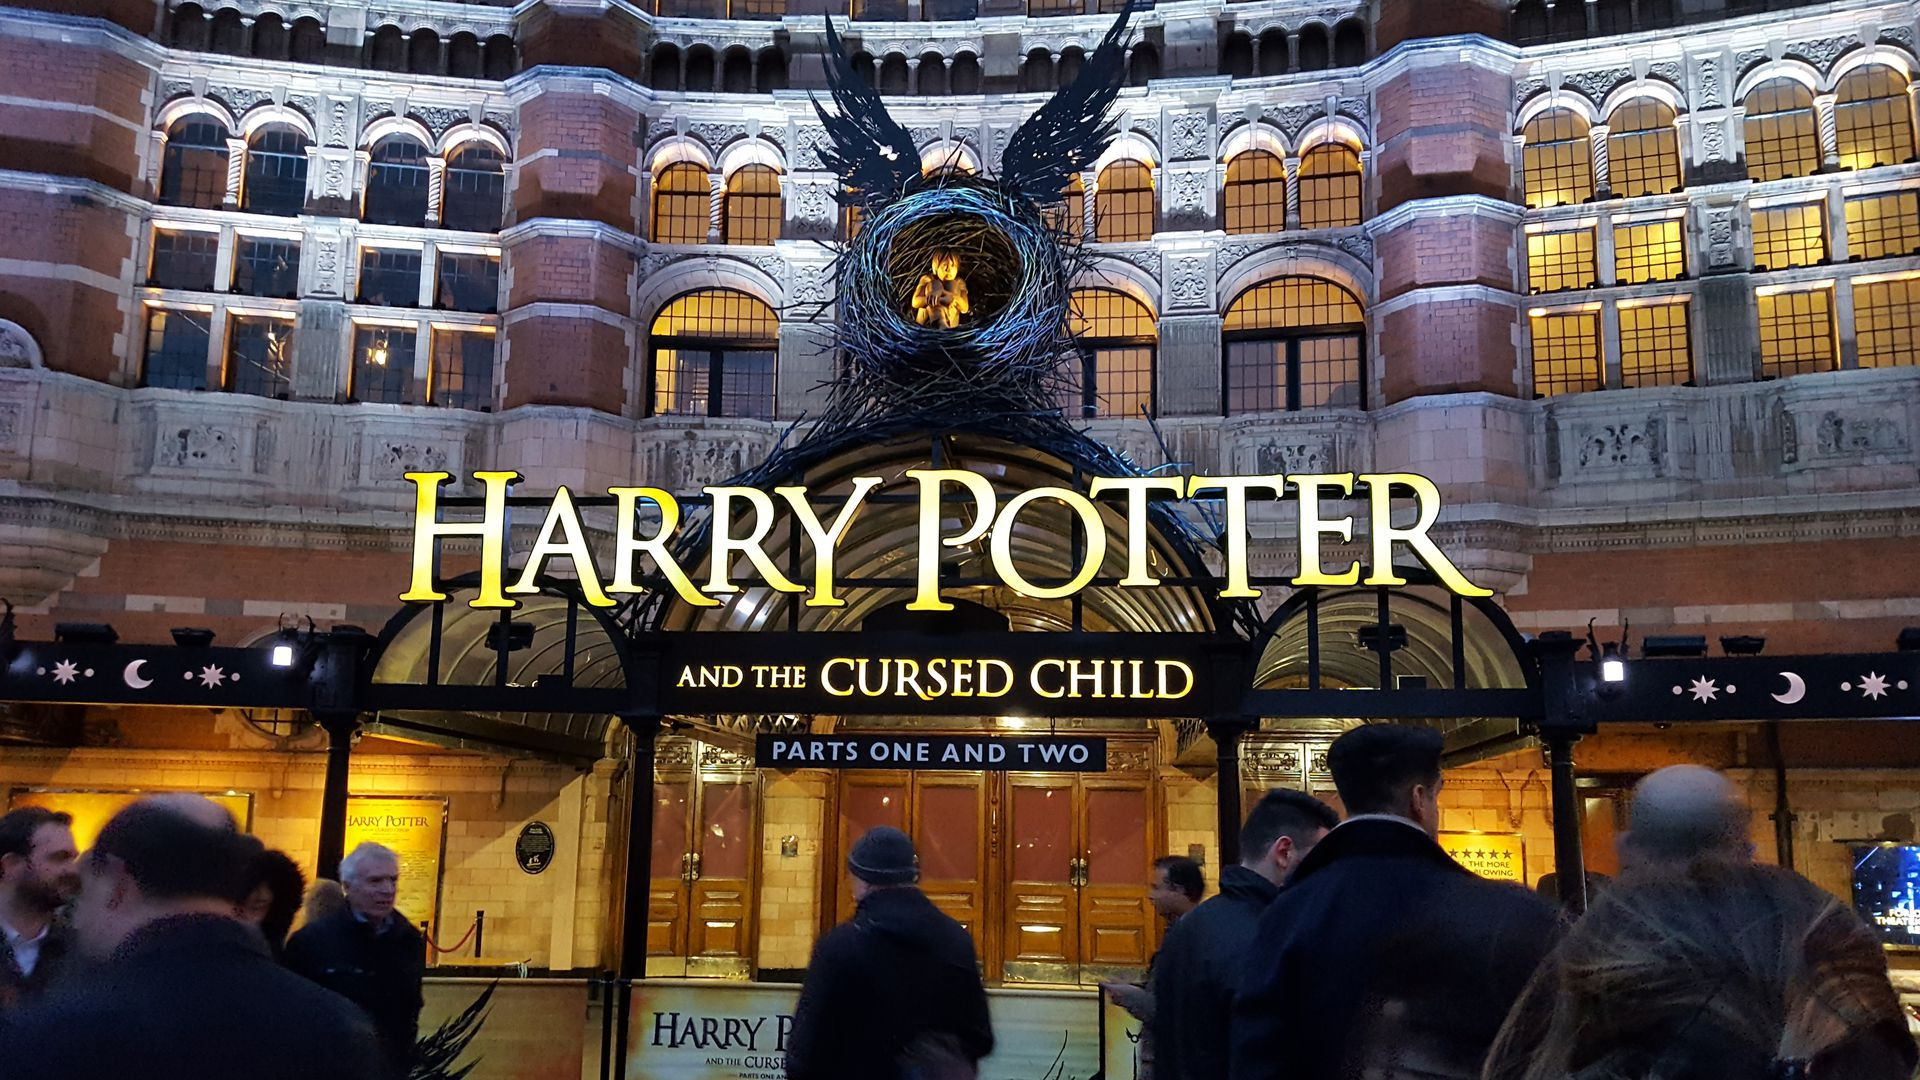 Harry Potter Themed Quest Tour of London & Audio Guide